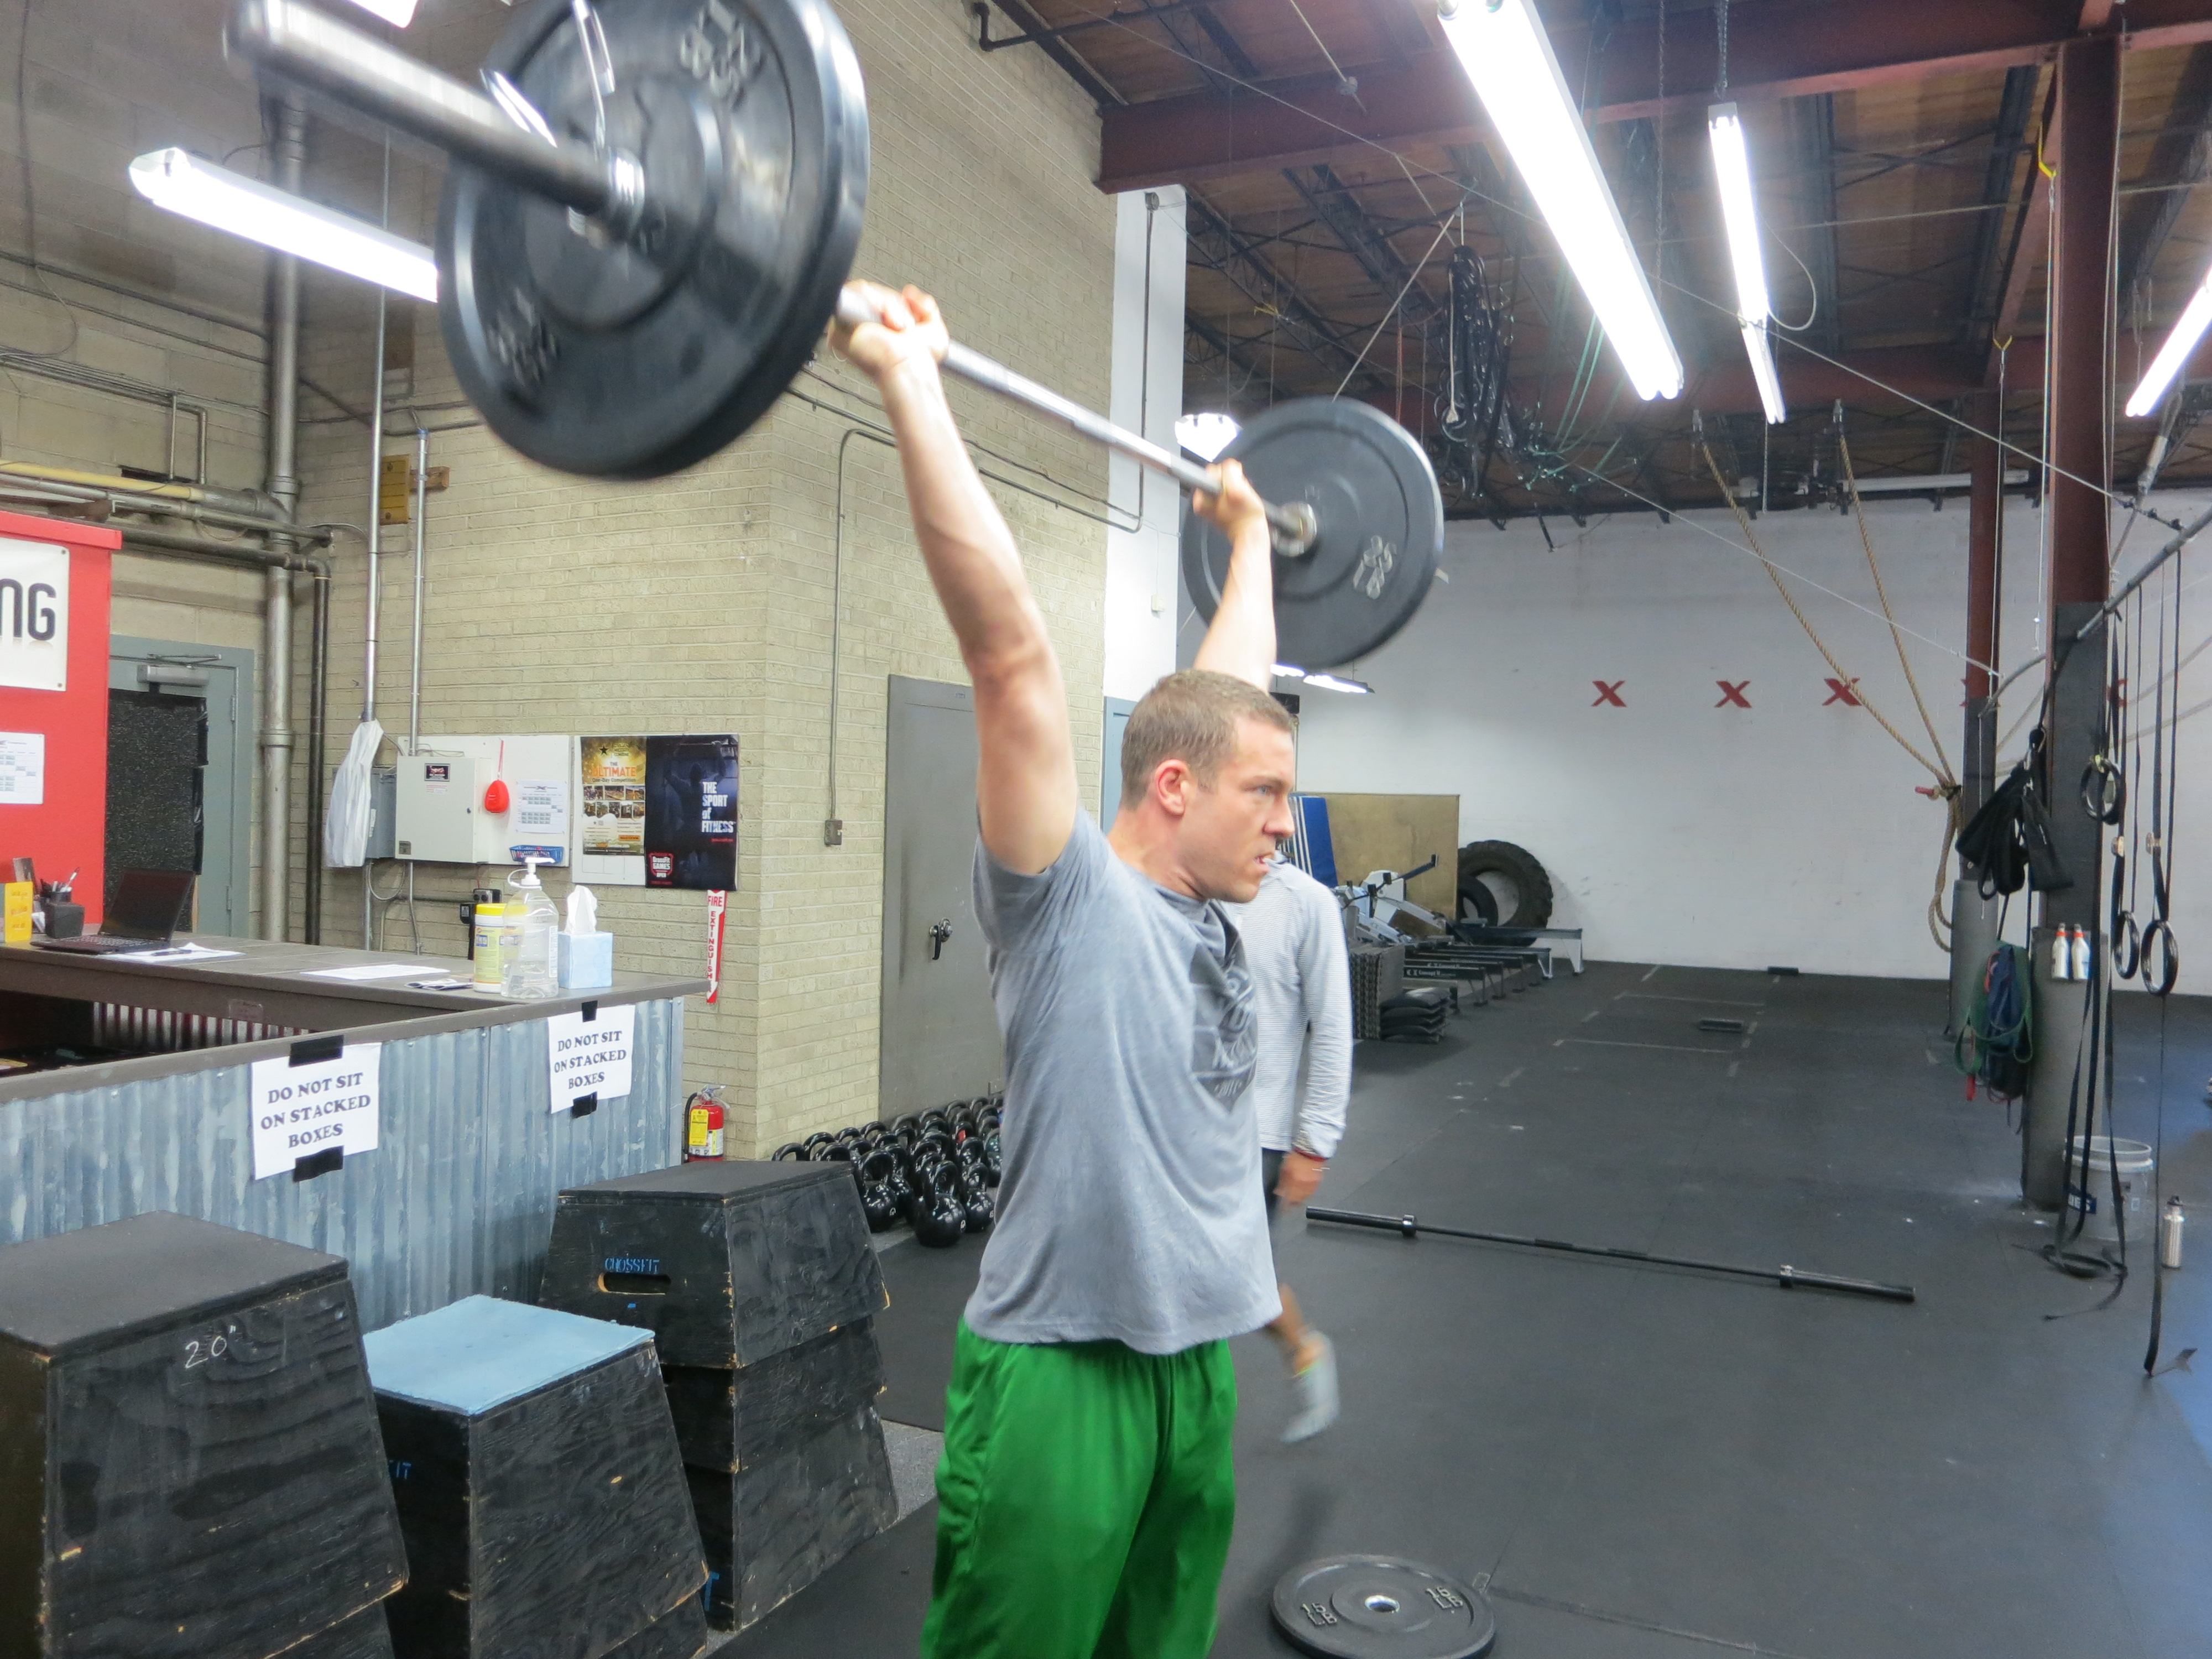 Sunday, June 16 WOD